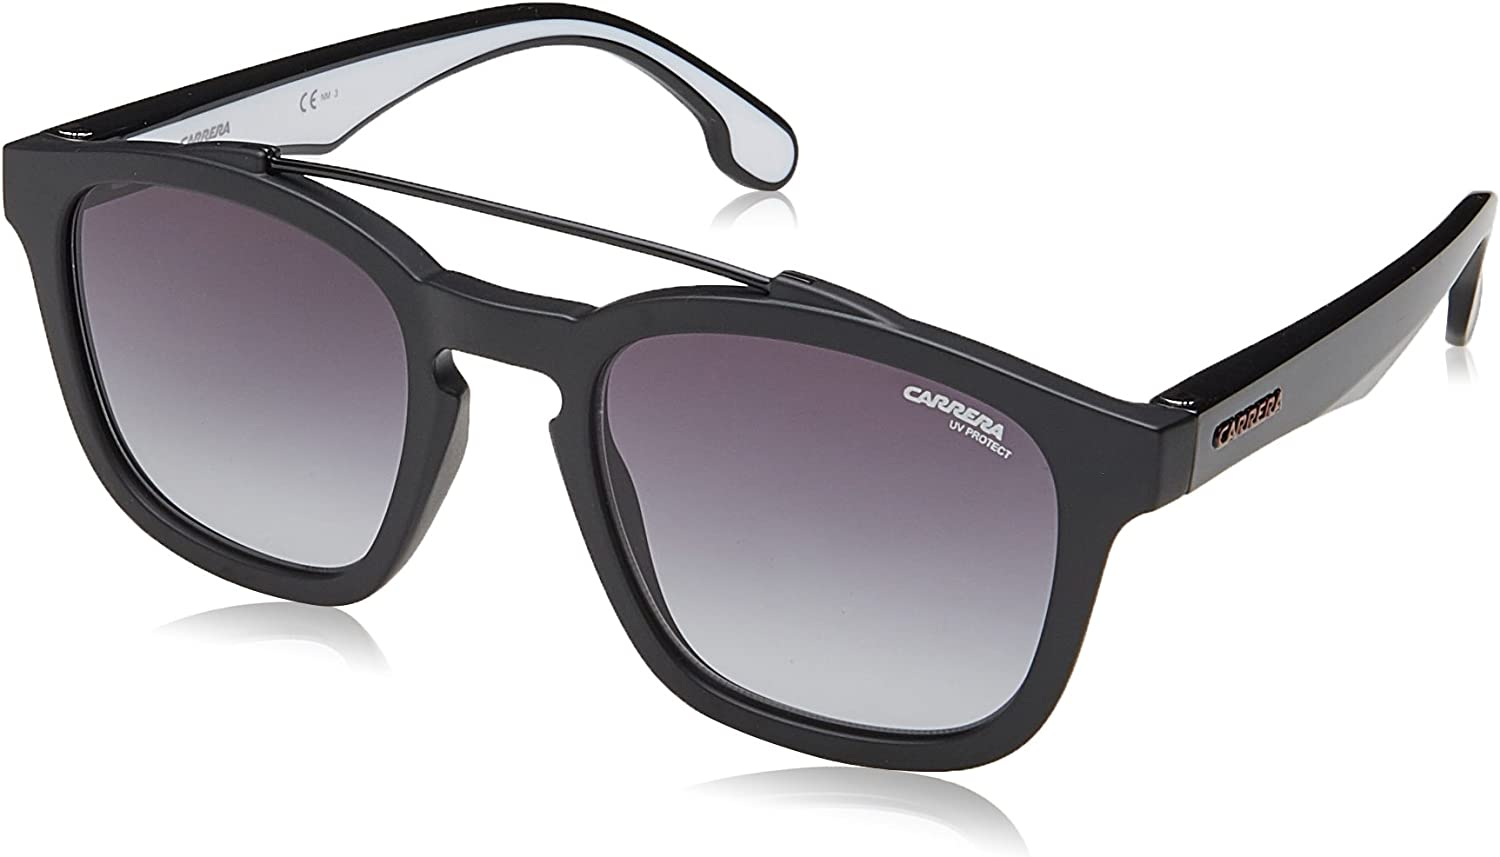 Carrera 1011 s Square Sunglasses MTT BLACK 52 mm